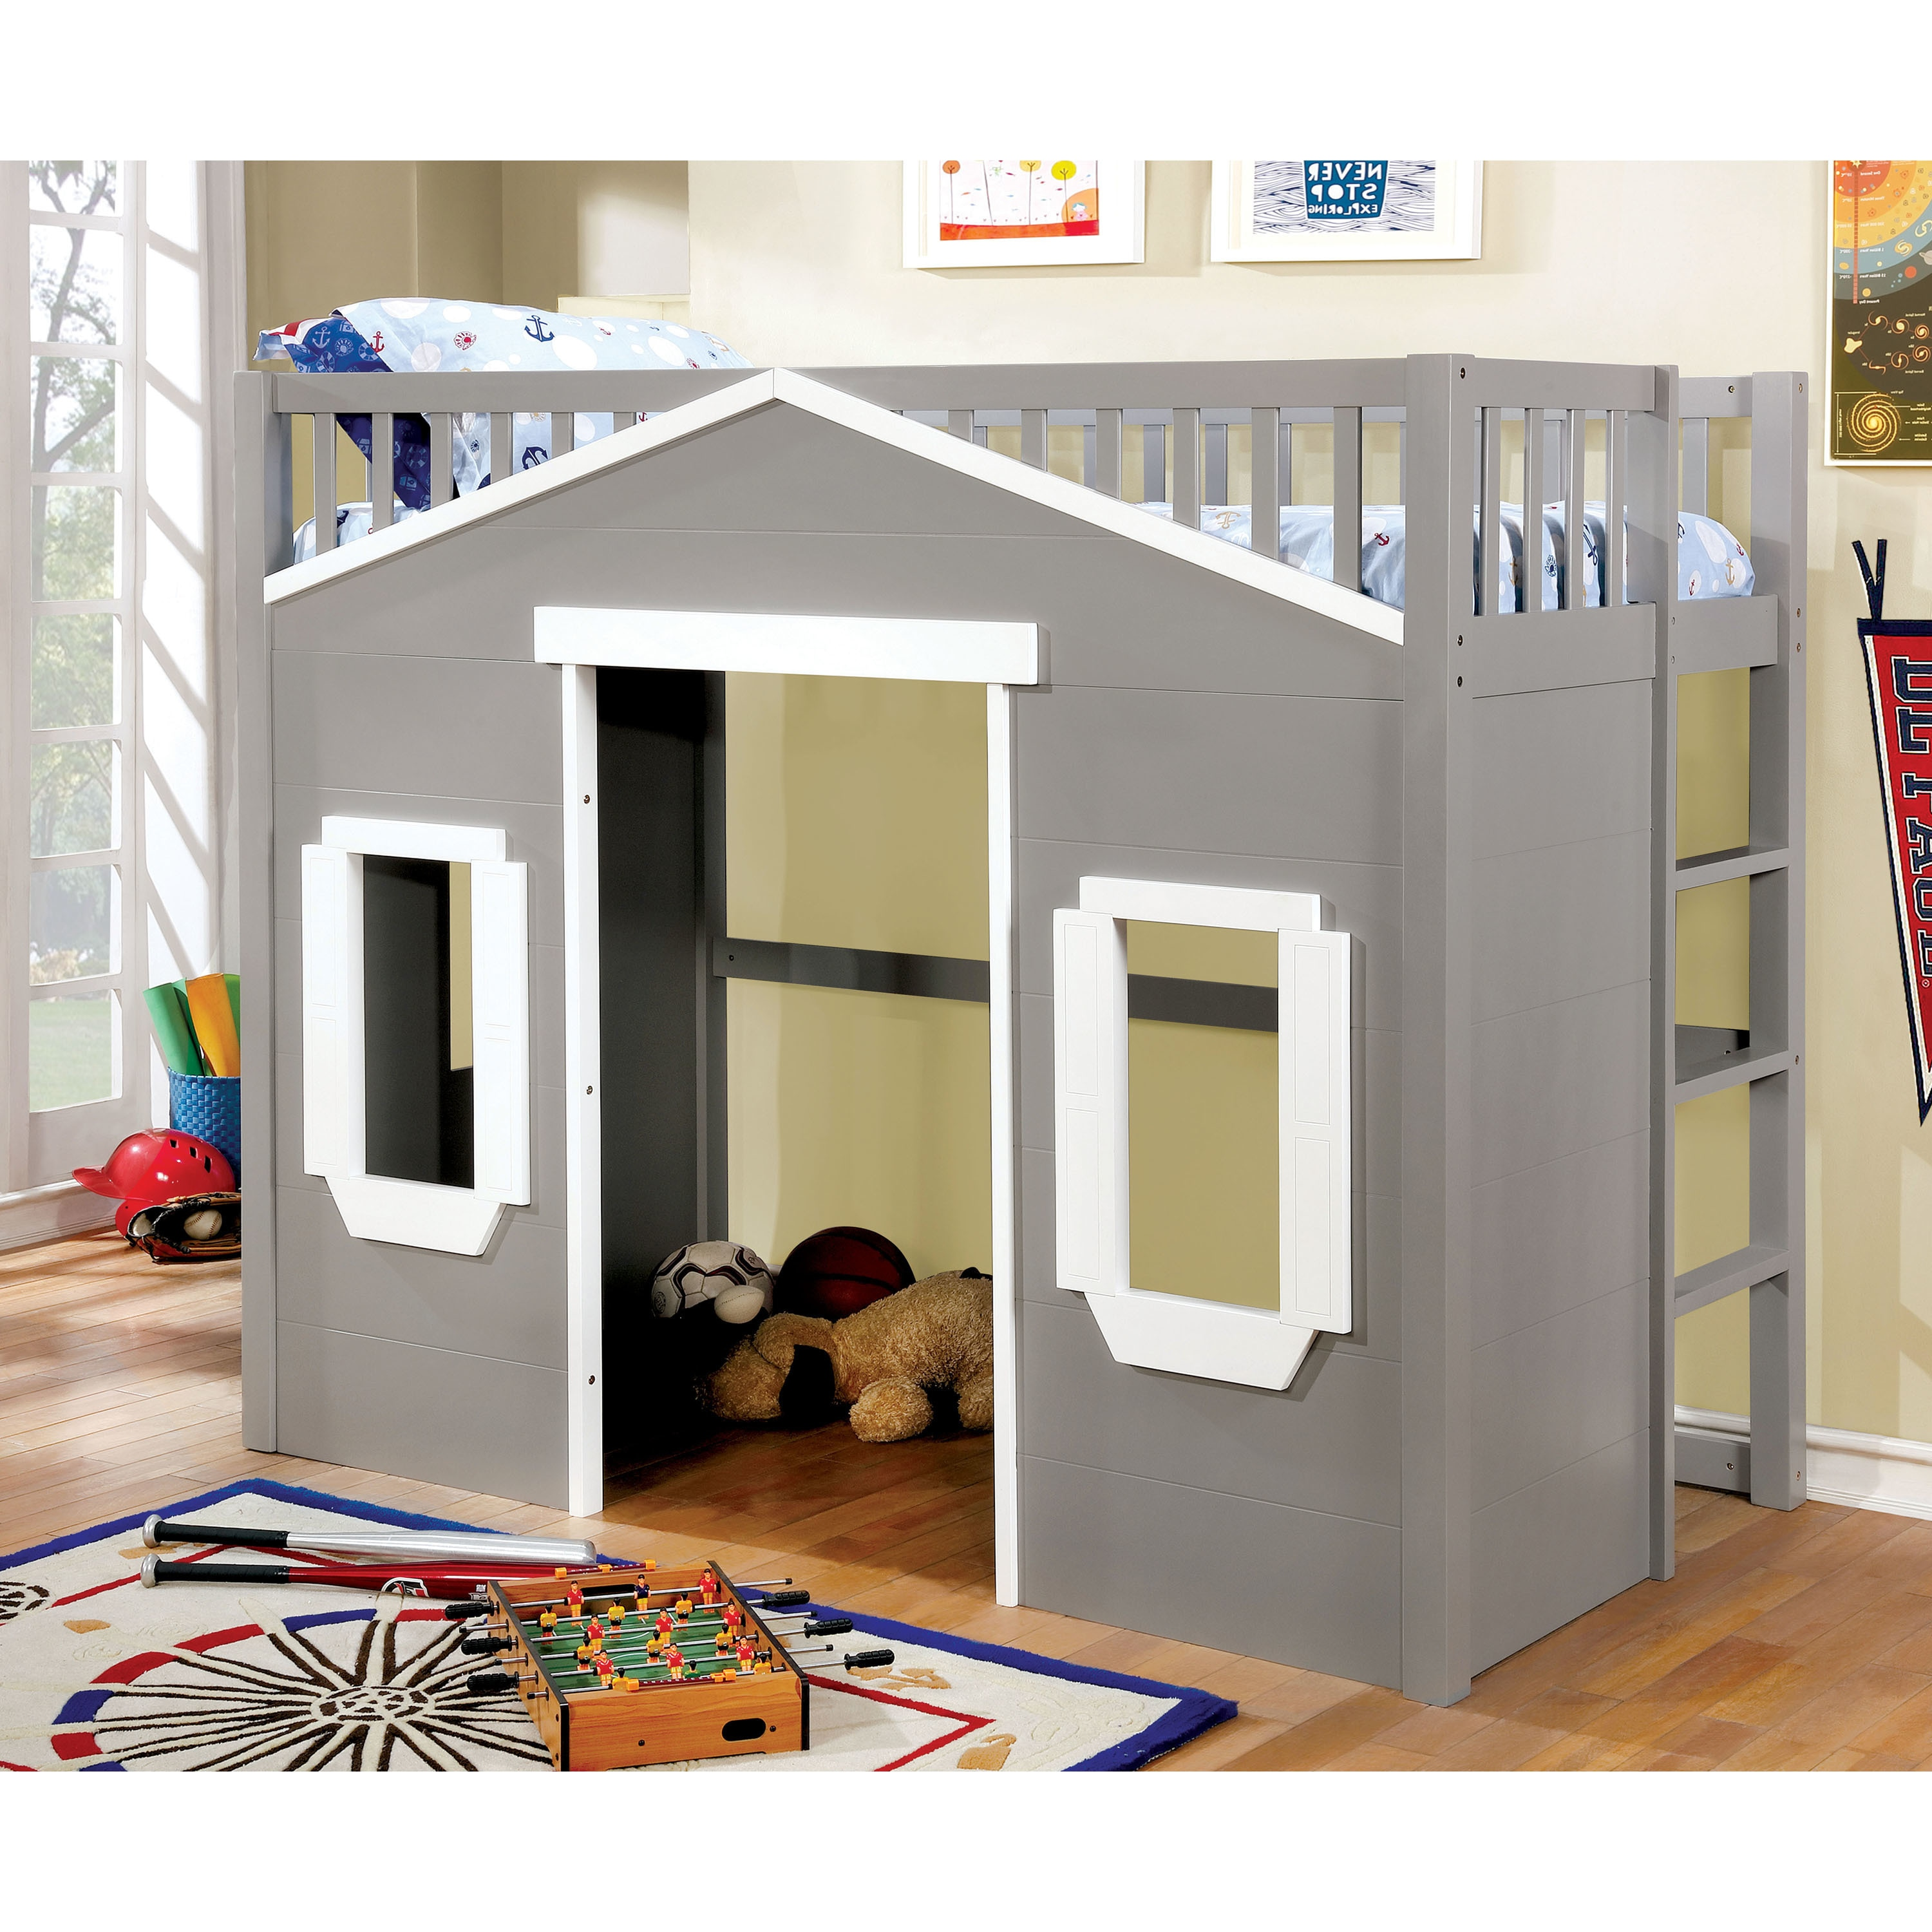 Furniture Of America Cosimo Novelty House Themed Twin Size Loft Bed   Free  Shipping Today   Overstock   25819476